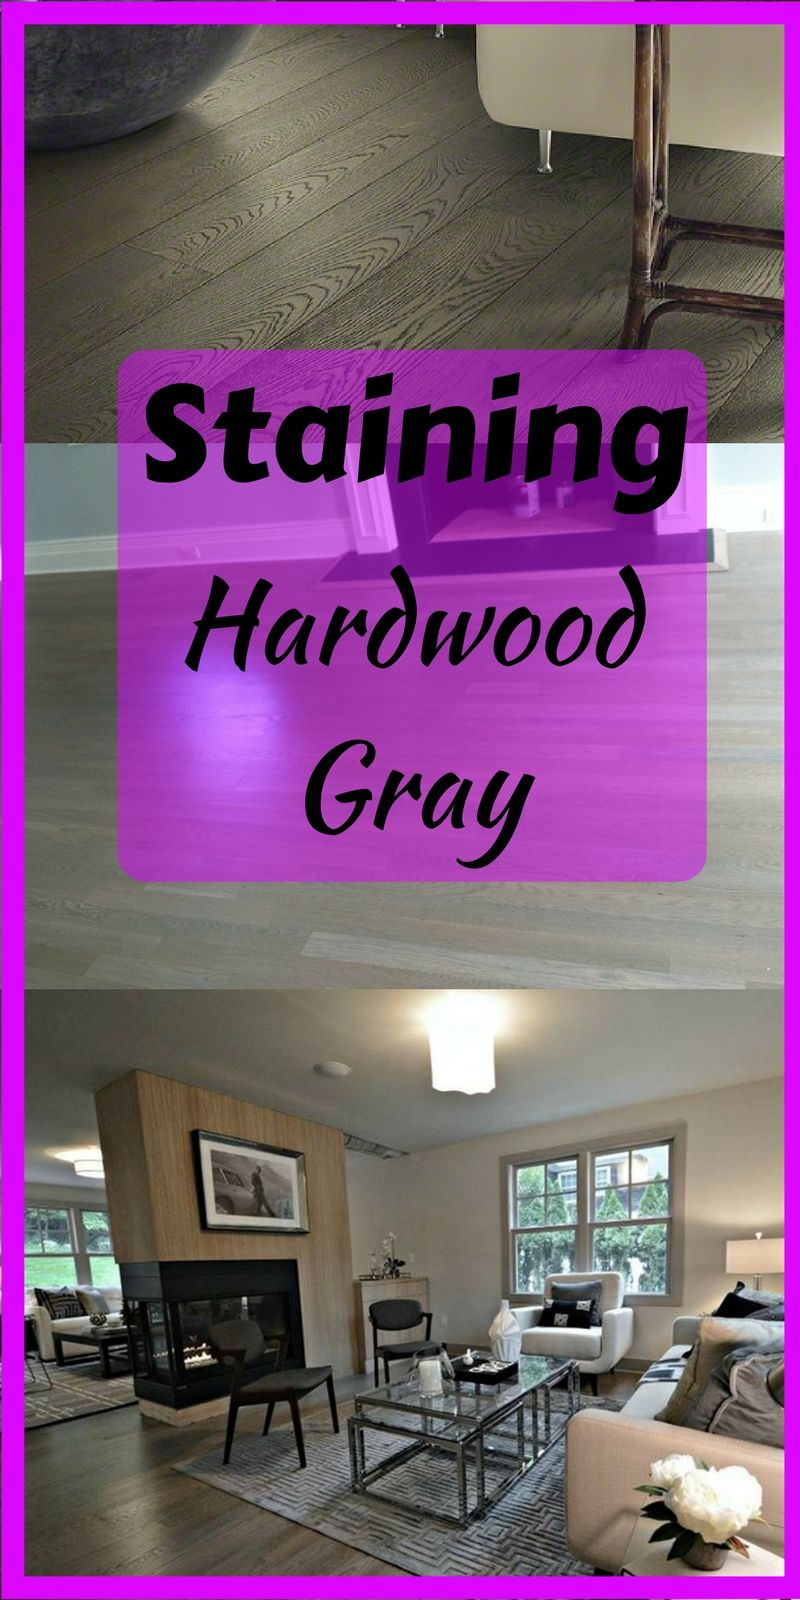 Staining hardwood flooring gray.  How to refinish and stain wood floors gray. #grayhardwood #graystain TheFlooringGirl.com #stainedwood